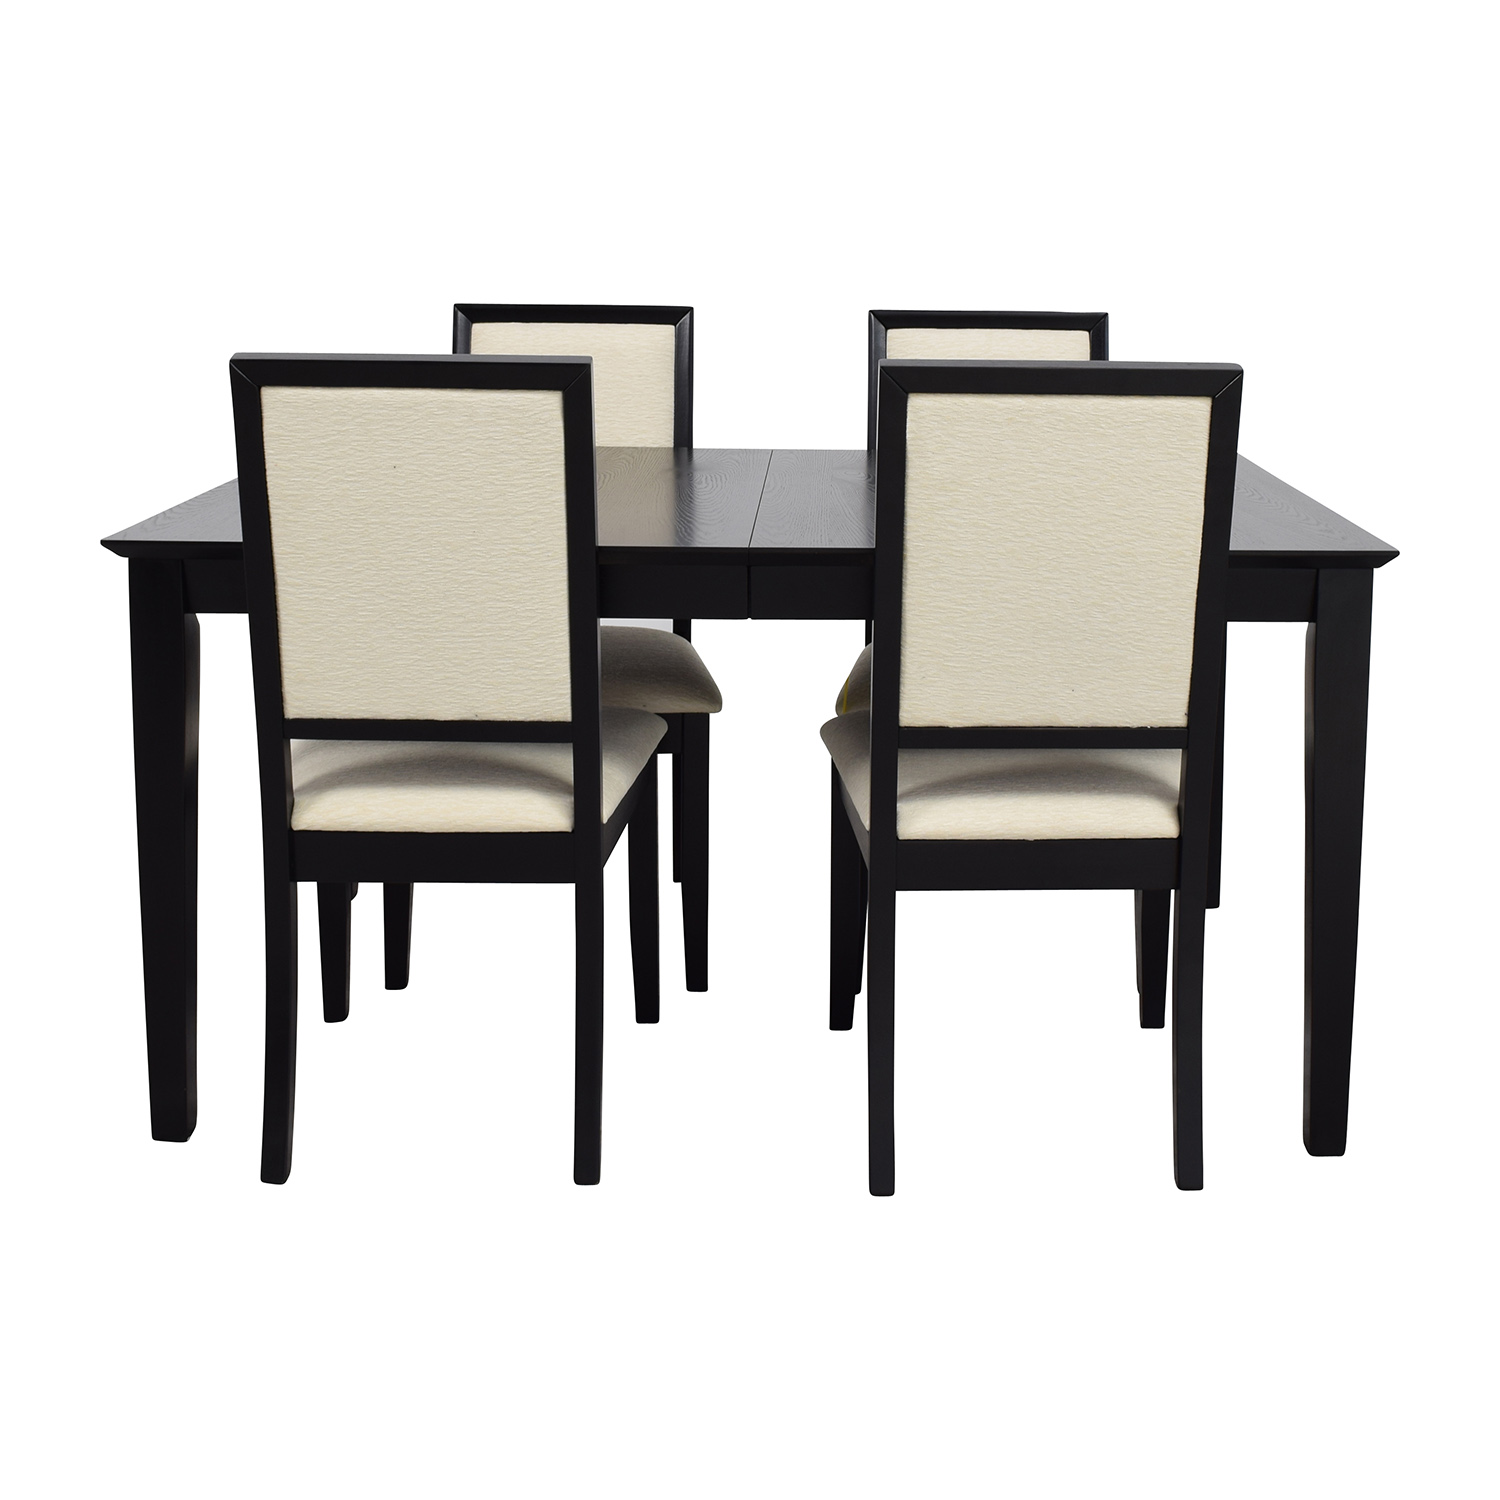 Harlem Furniture Harlem Furniture Black Dining Table with Four Chairs nyc